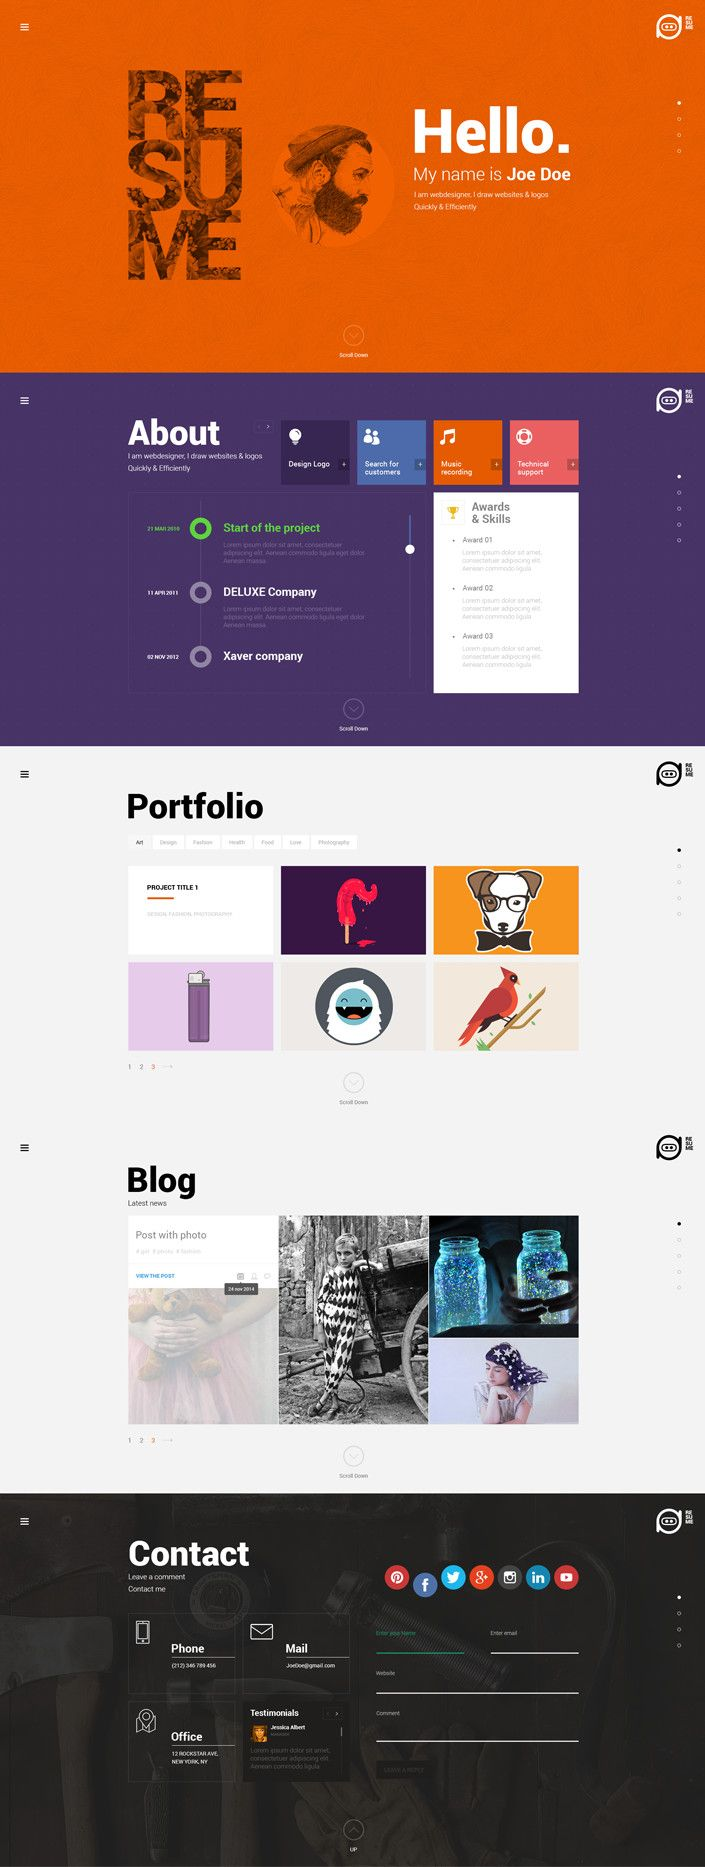 Wordpress Resume Theme Resume  WordPress Resume Theme  Pinterest  Vivid Colors Cv .